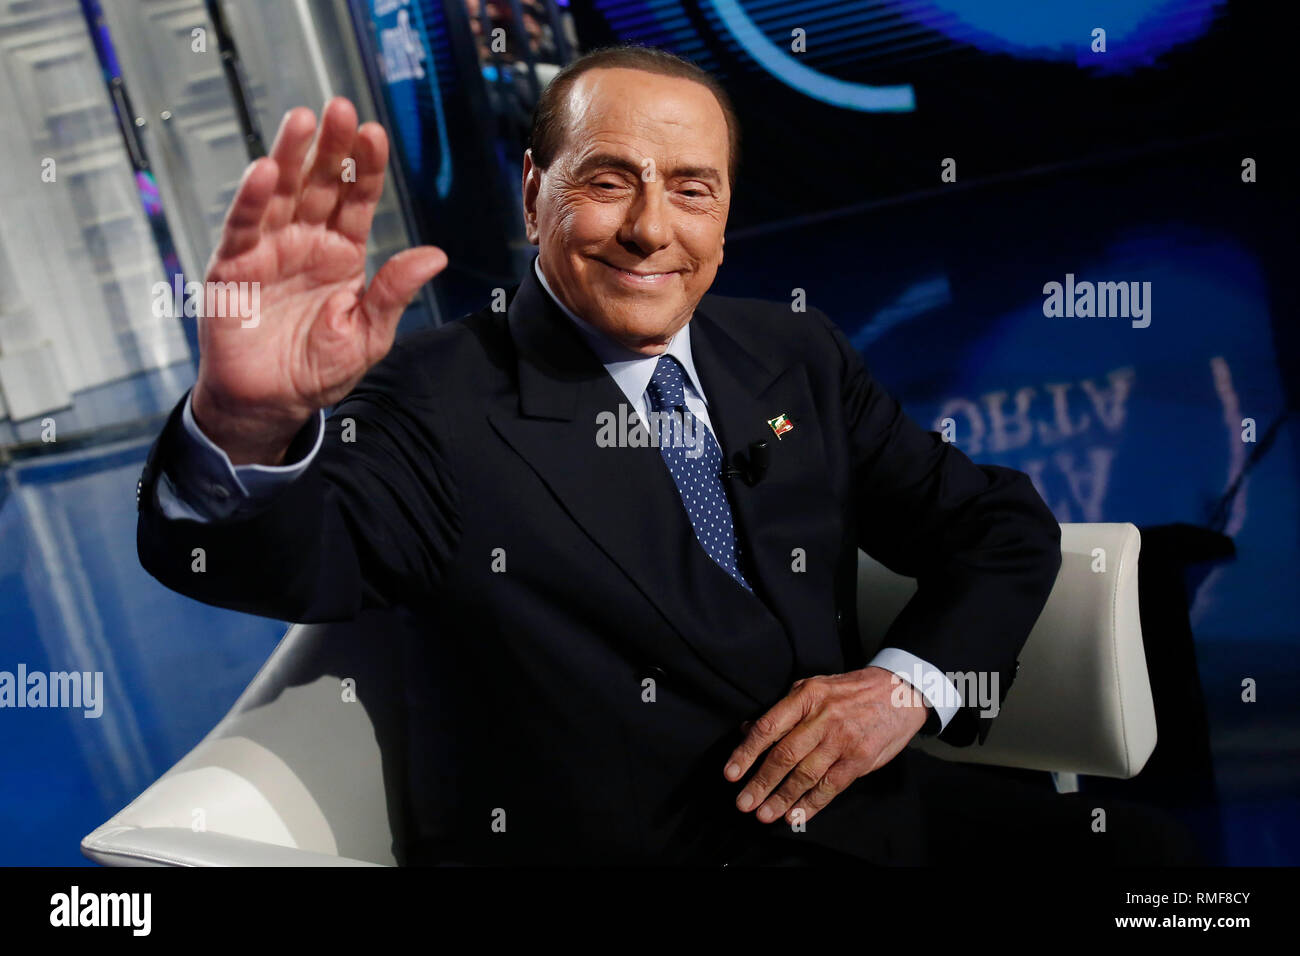 Porta Tv Lazio.Rome Italy 14th Feb 2019 Silvio Berlusconi Rome February